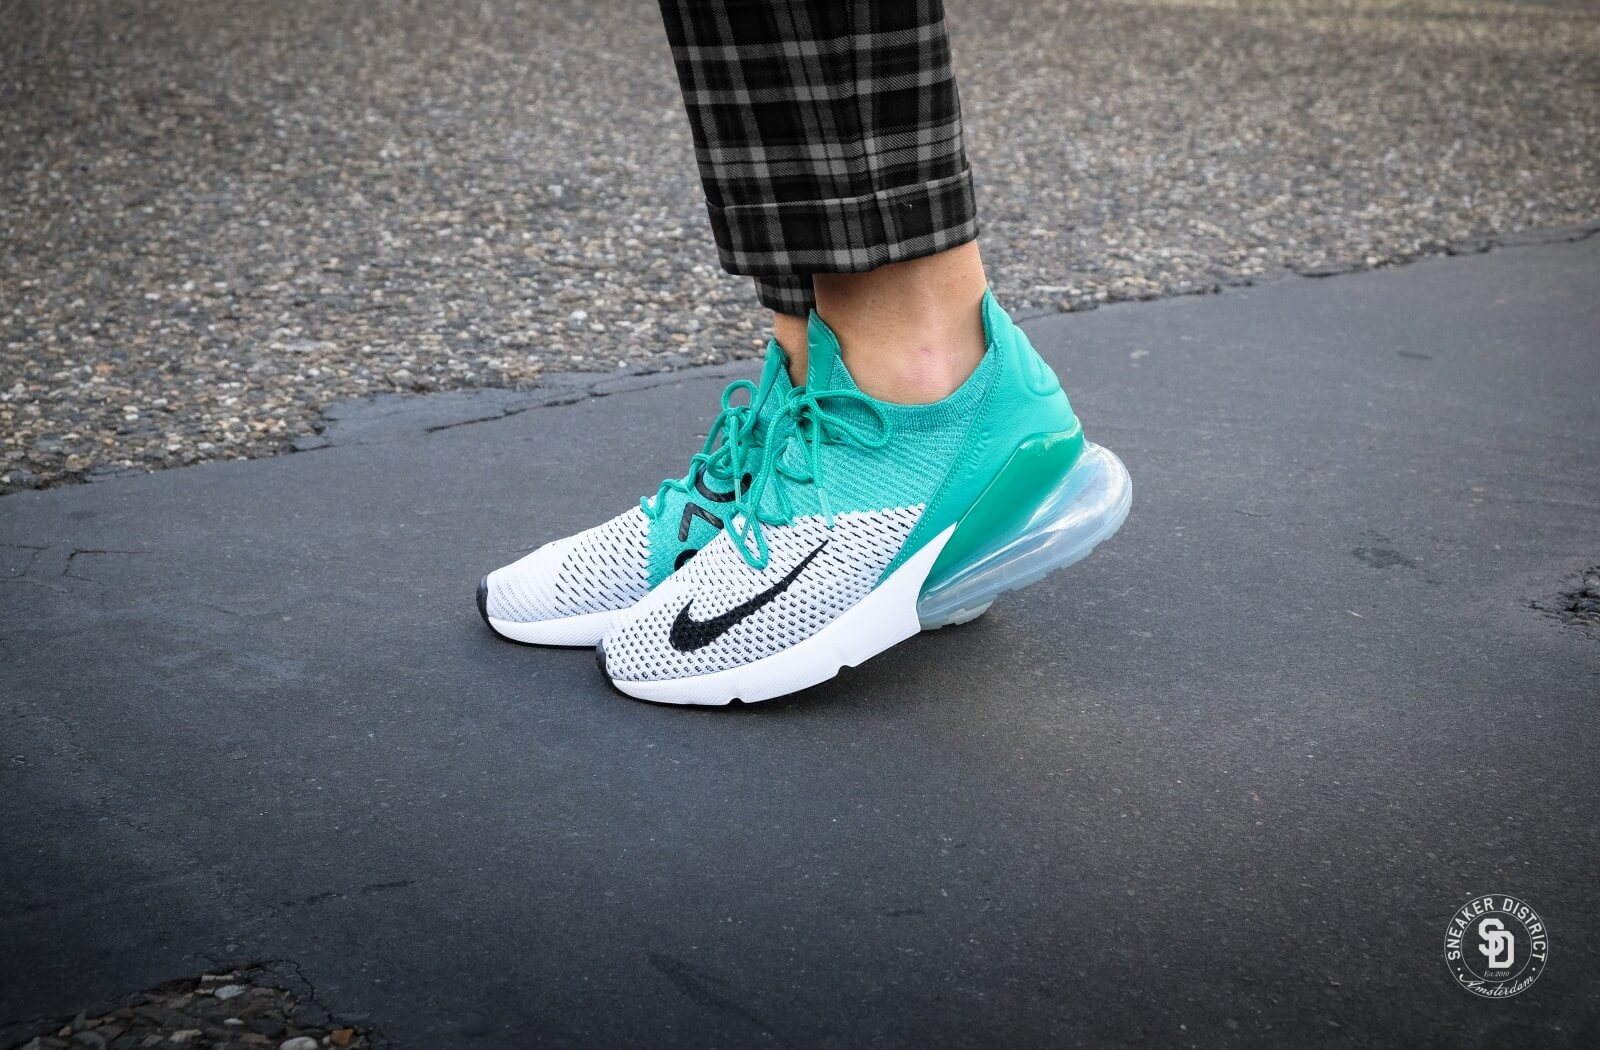 Nike Women S Air Max 270 Flyknit Clear Emerald Black White